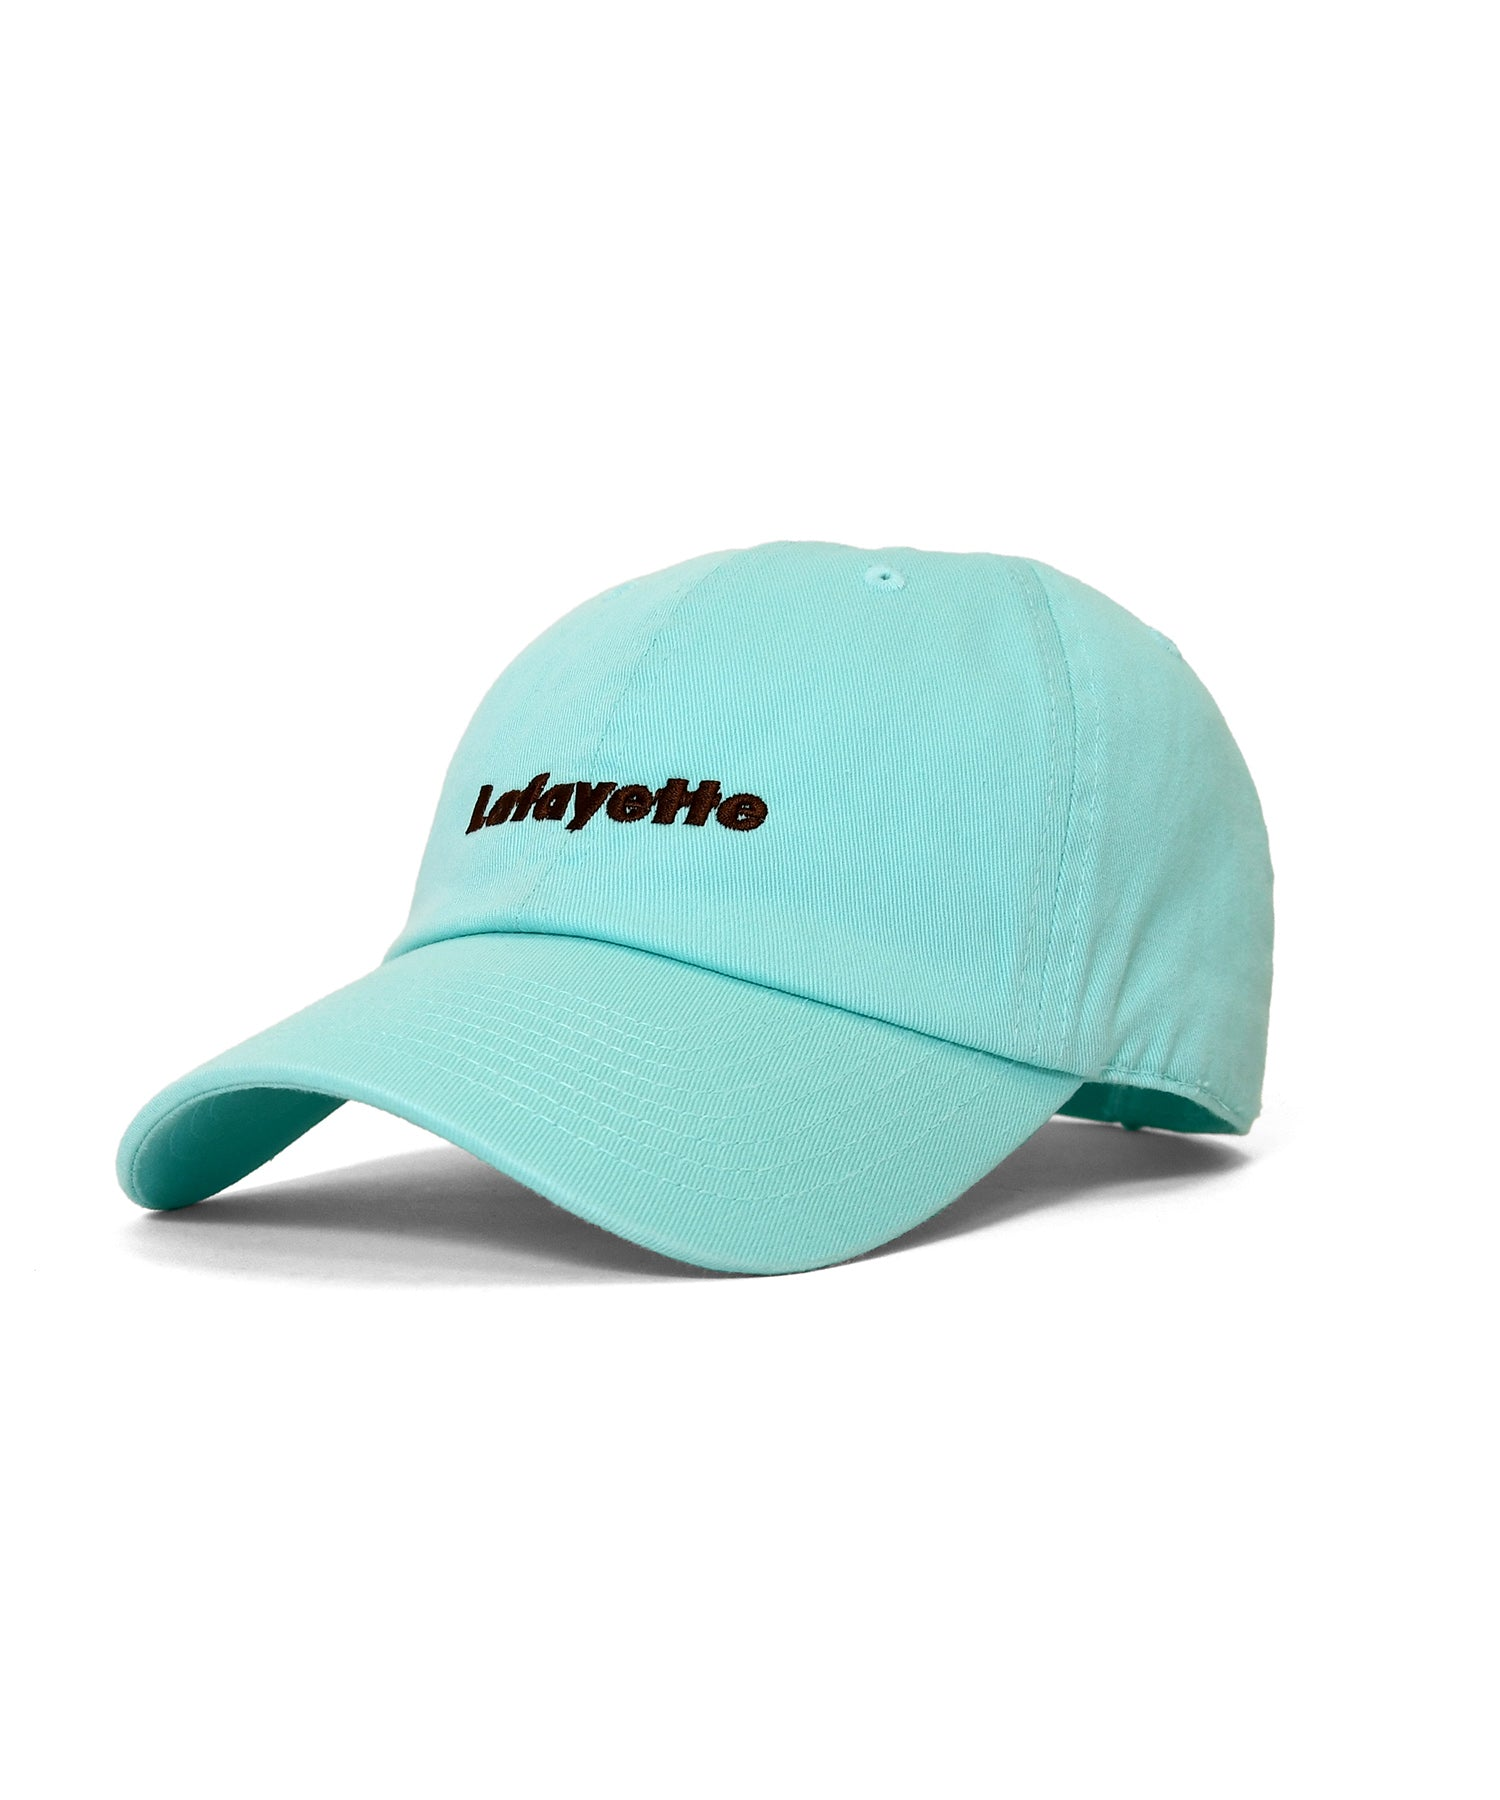 Lafayette BALL CAP LOGO DAD HAT LS201408 LIGHT BLUE